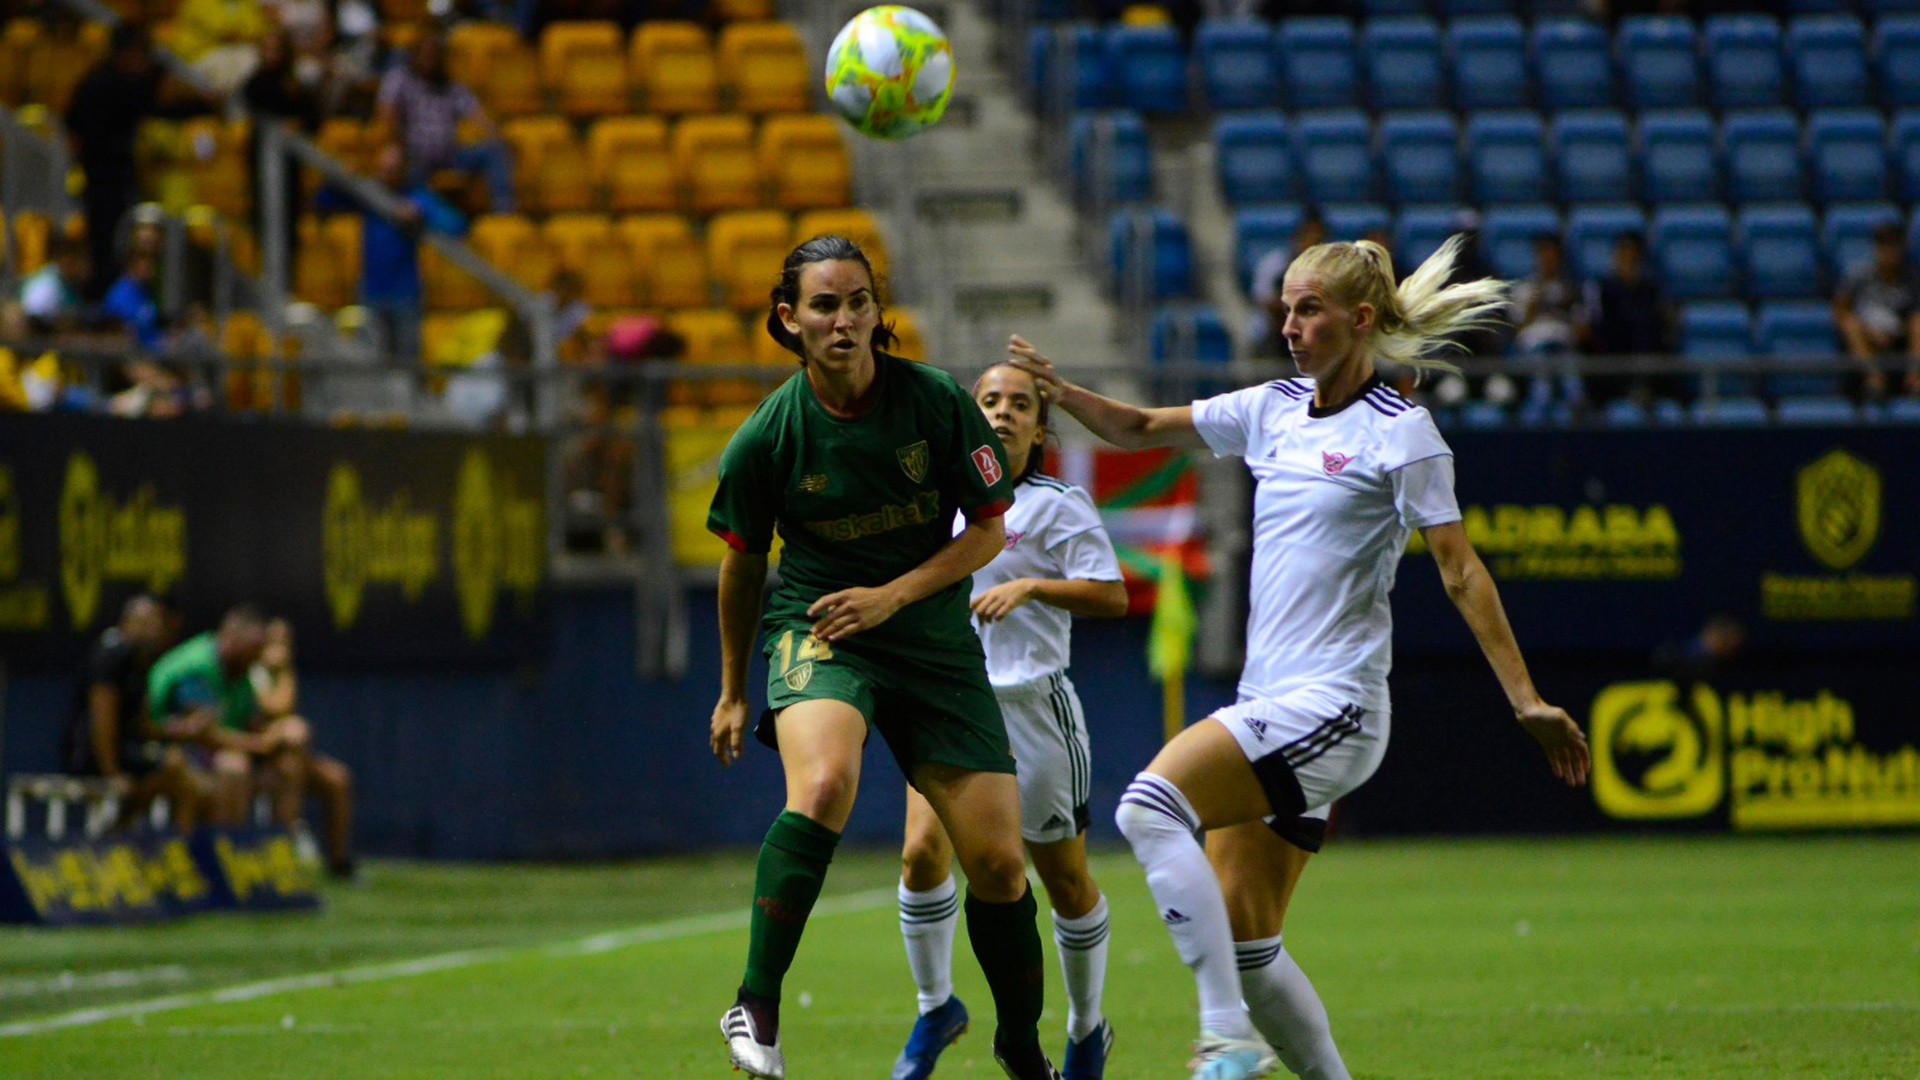 CD Tacón, rival in the quarter final of Copa de la Reina